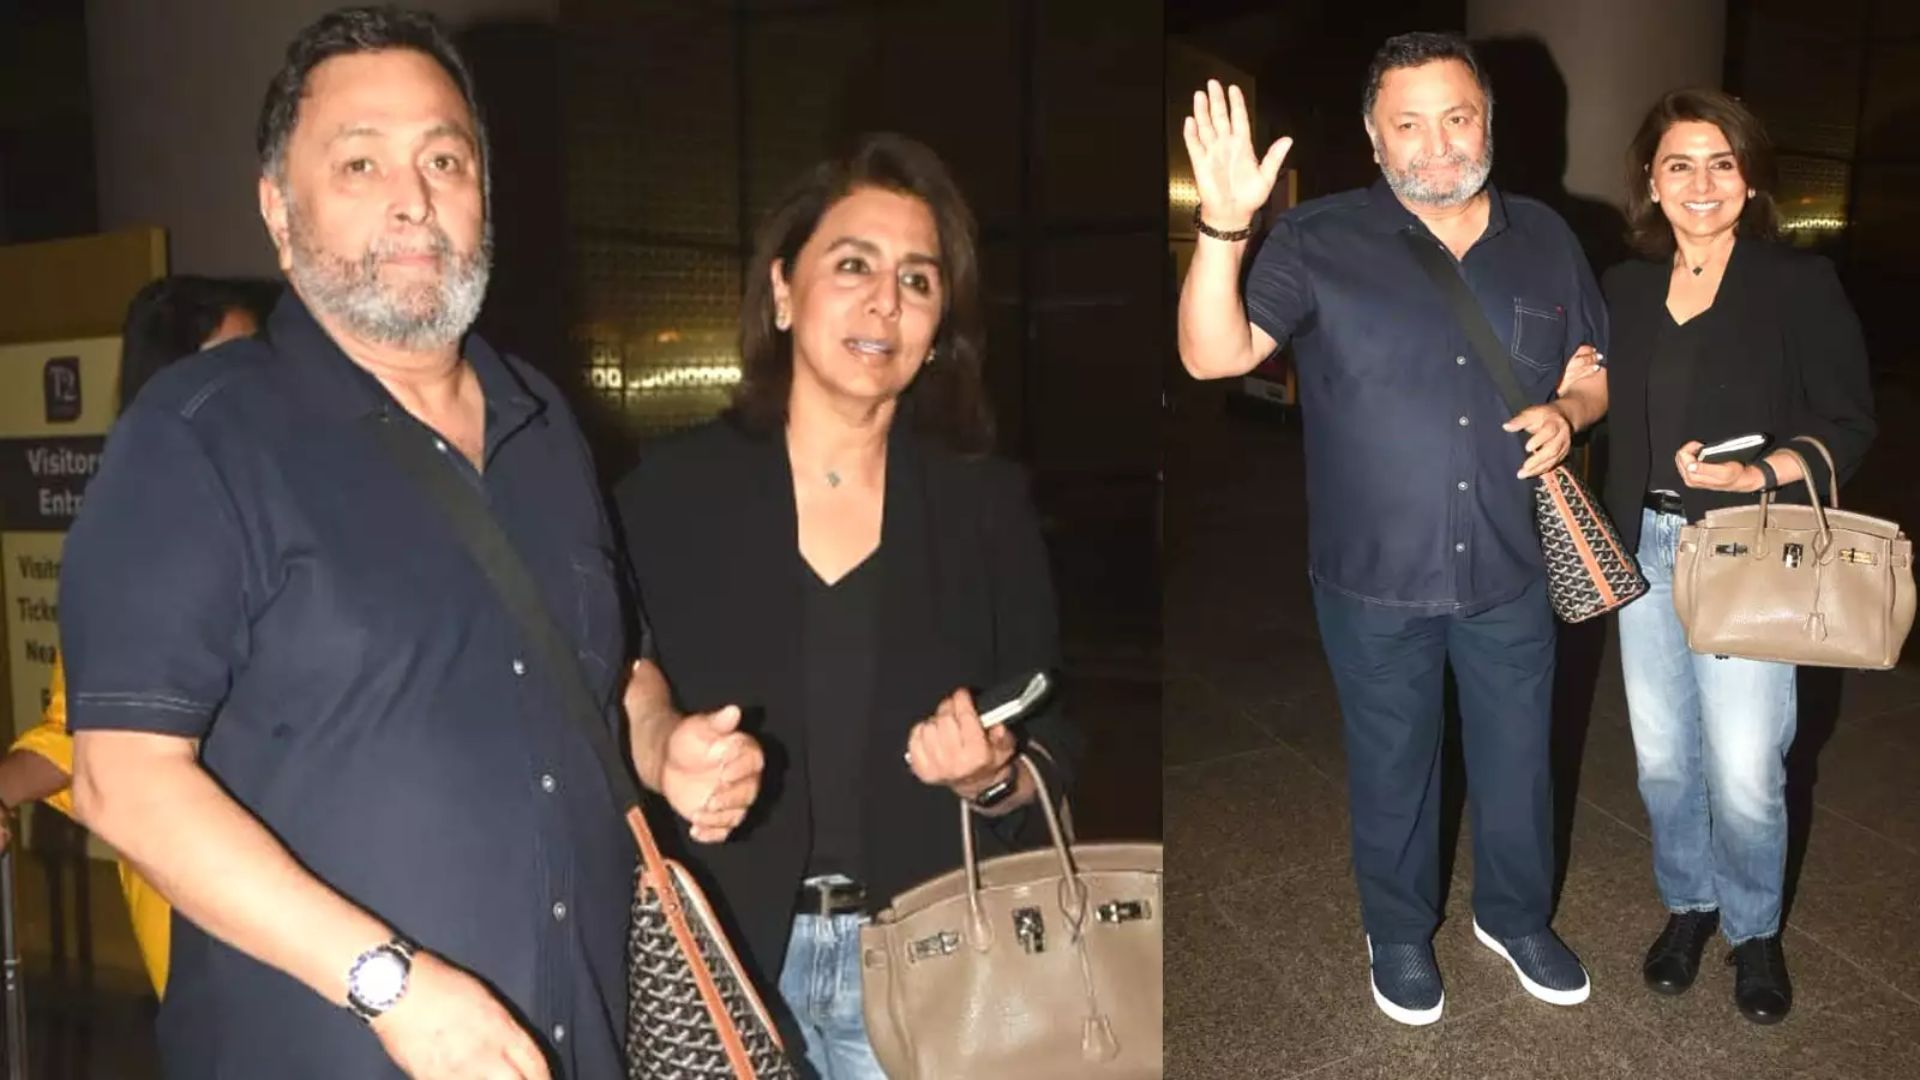 Rishi Kapoor returned to India after getting treatment for cancer